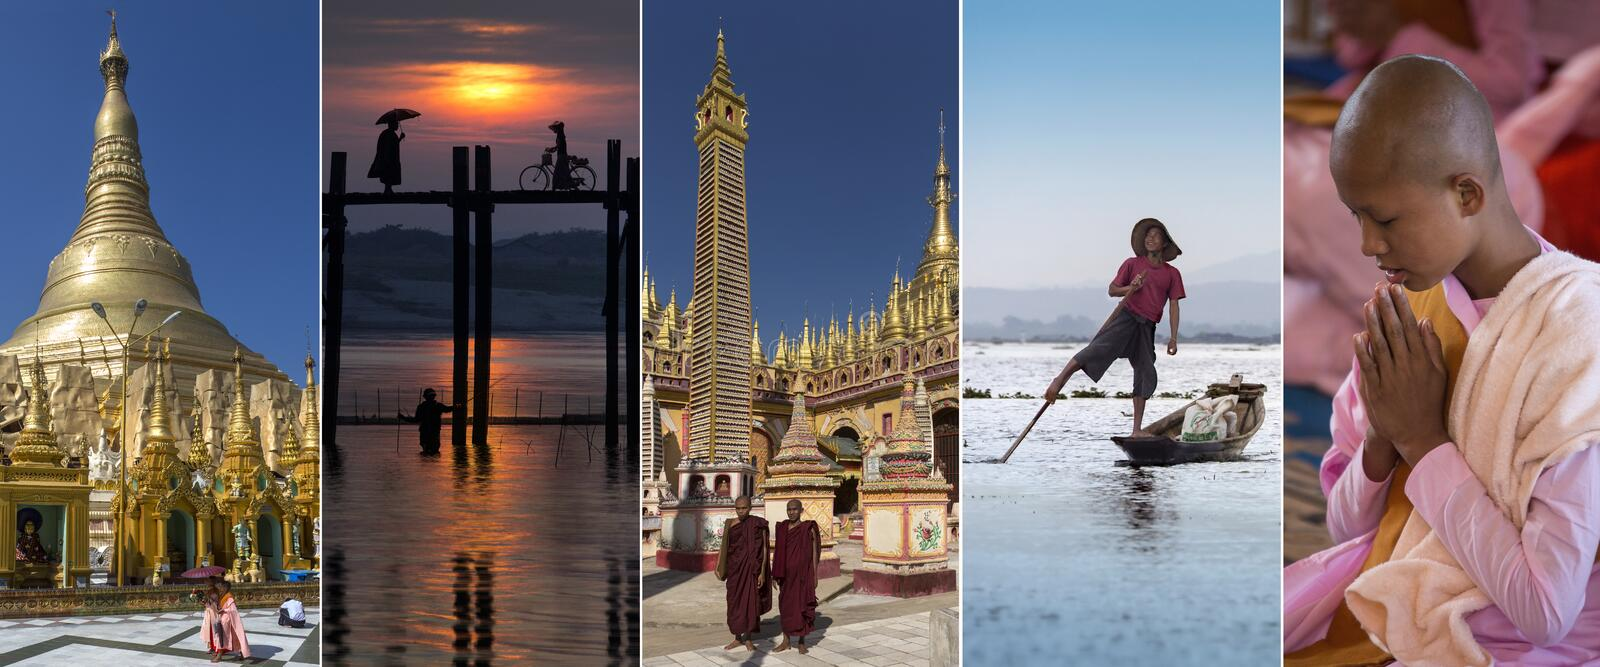 Sights of Myanmar - Burma royalty free stock photography